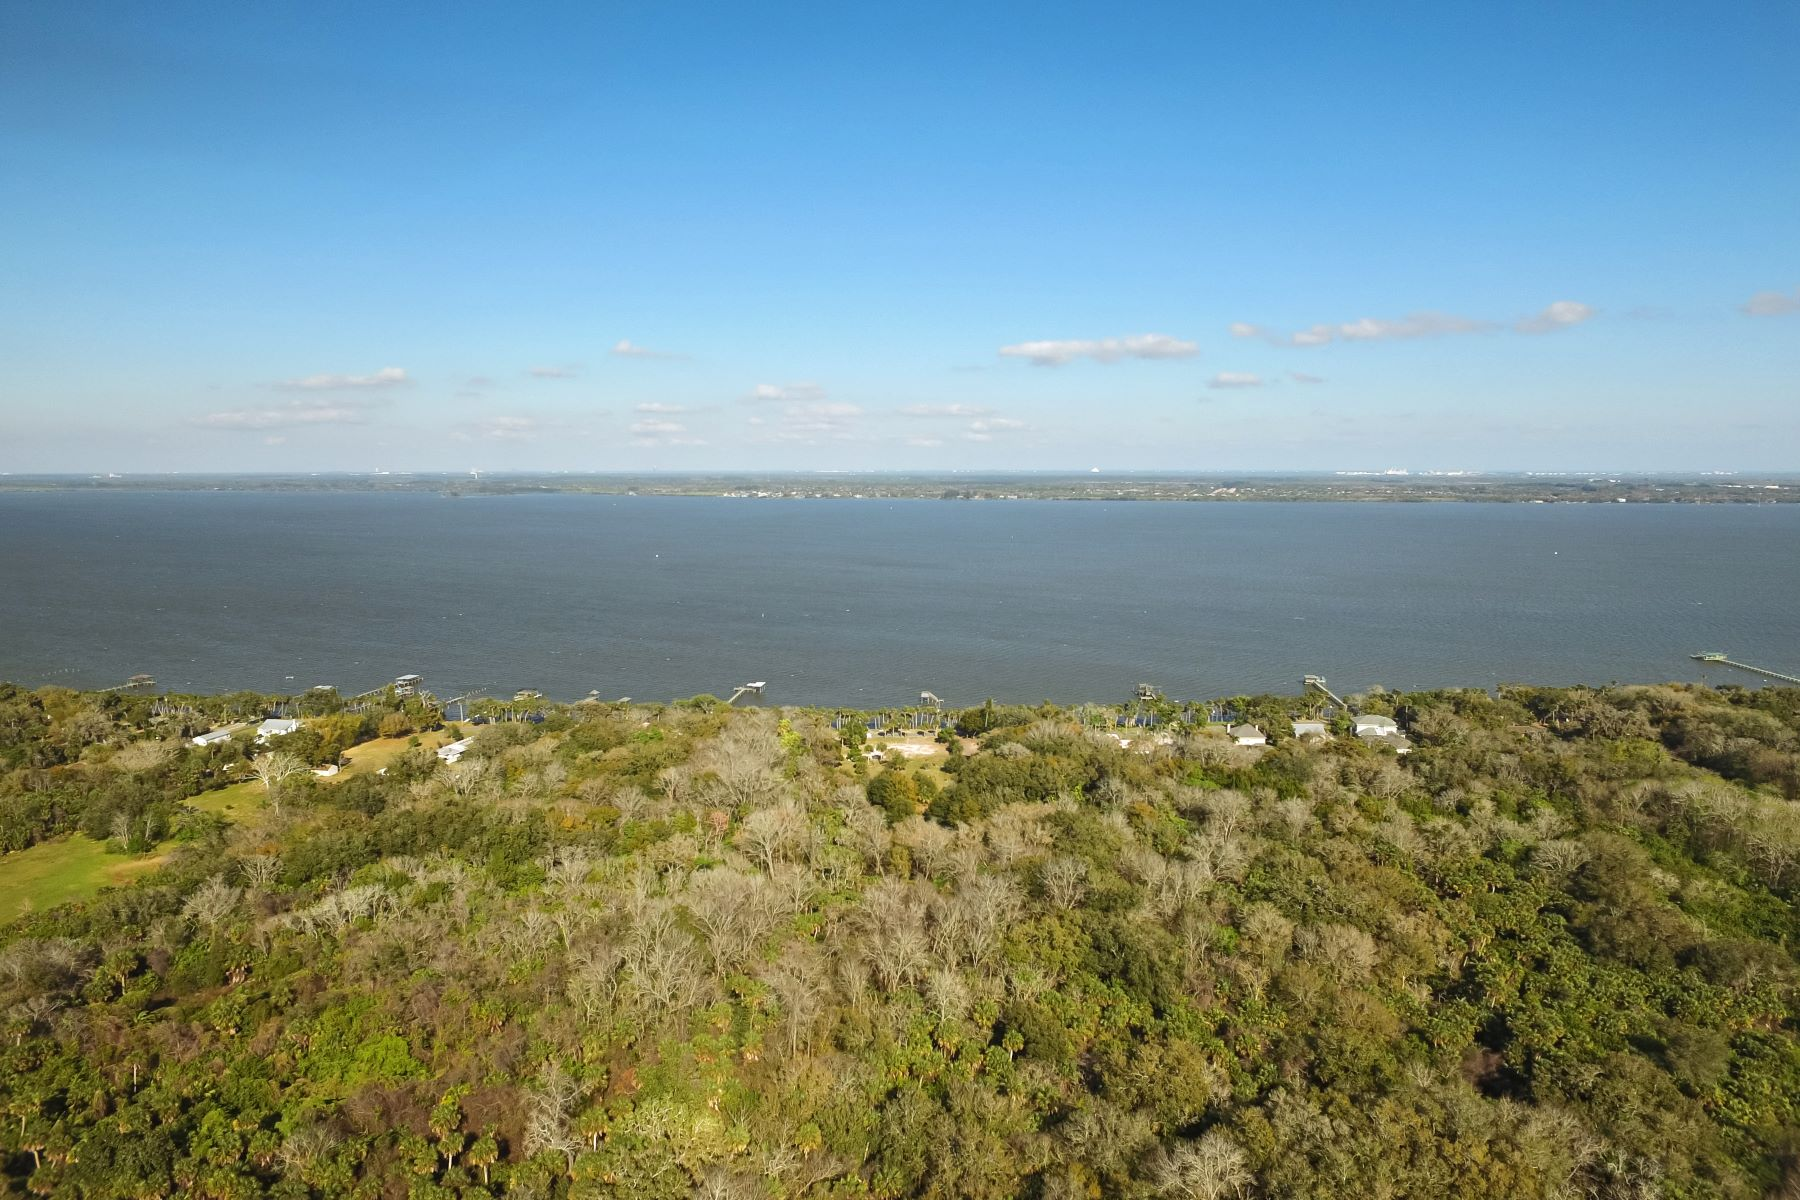 Land for Sale at OAKS ON RIVERS EDGE LOT 3 TRACT C 3885 Indian River Drive Cocoa, Florida 32926 United States